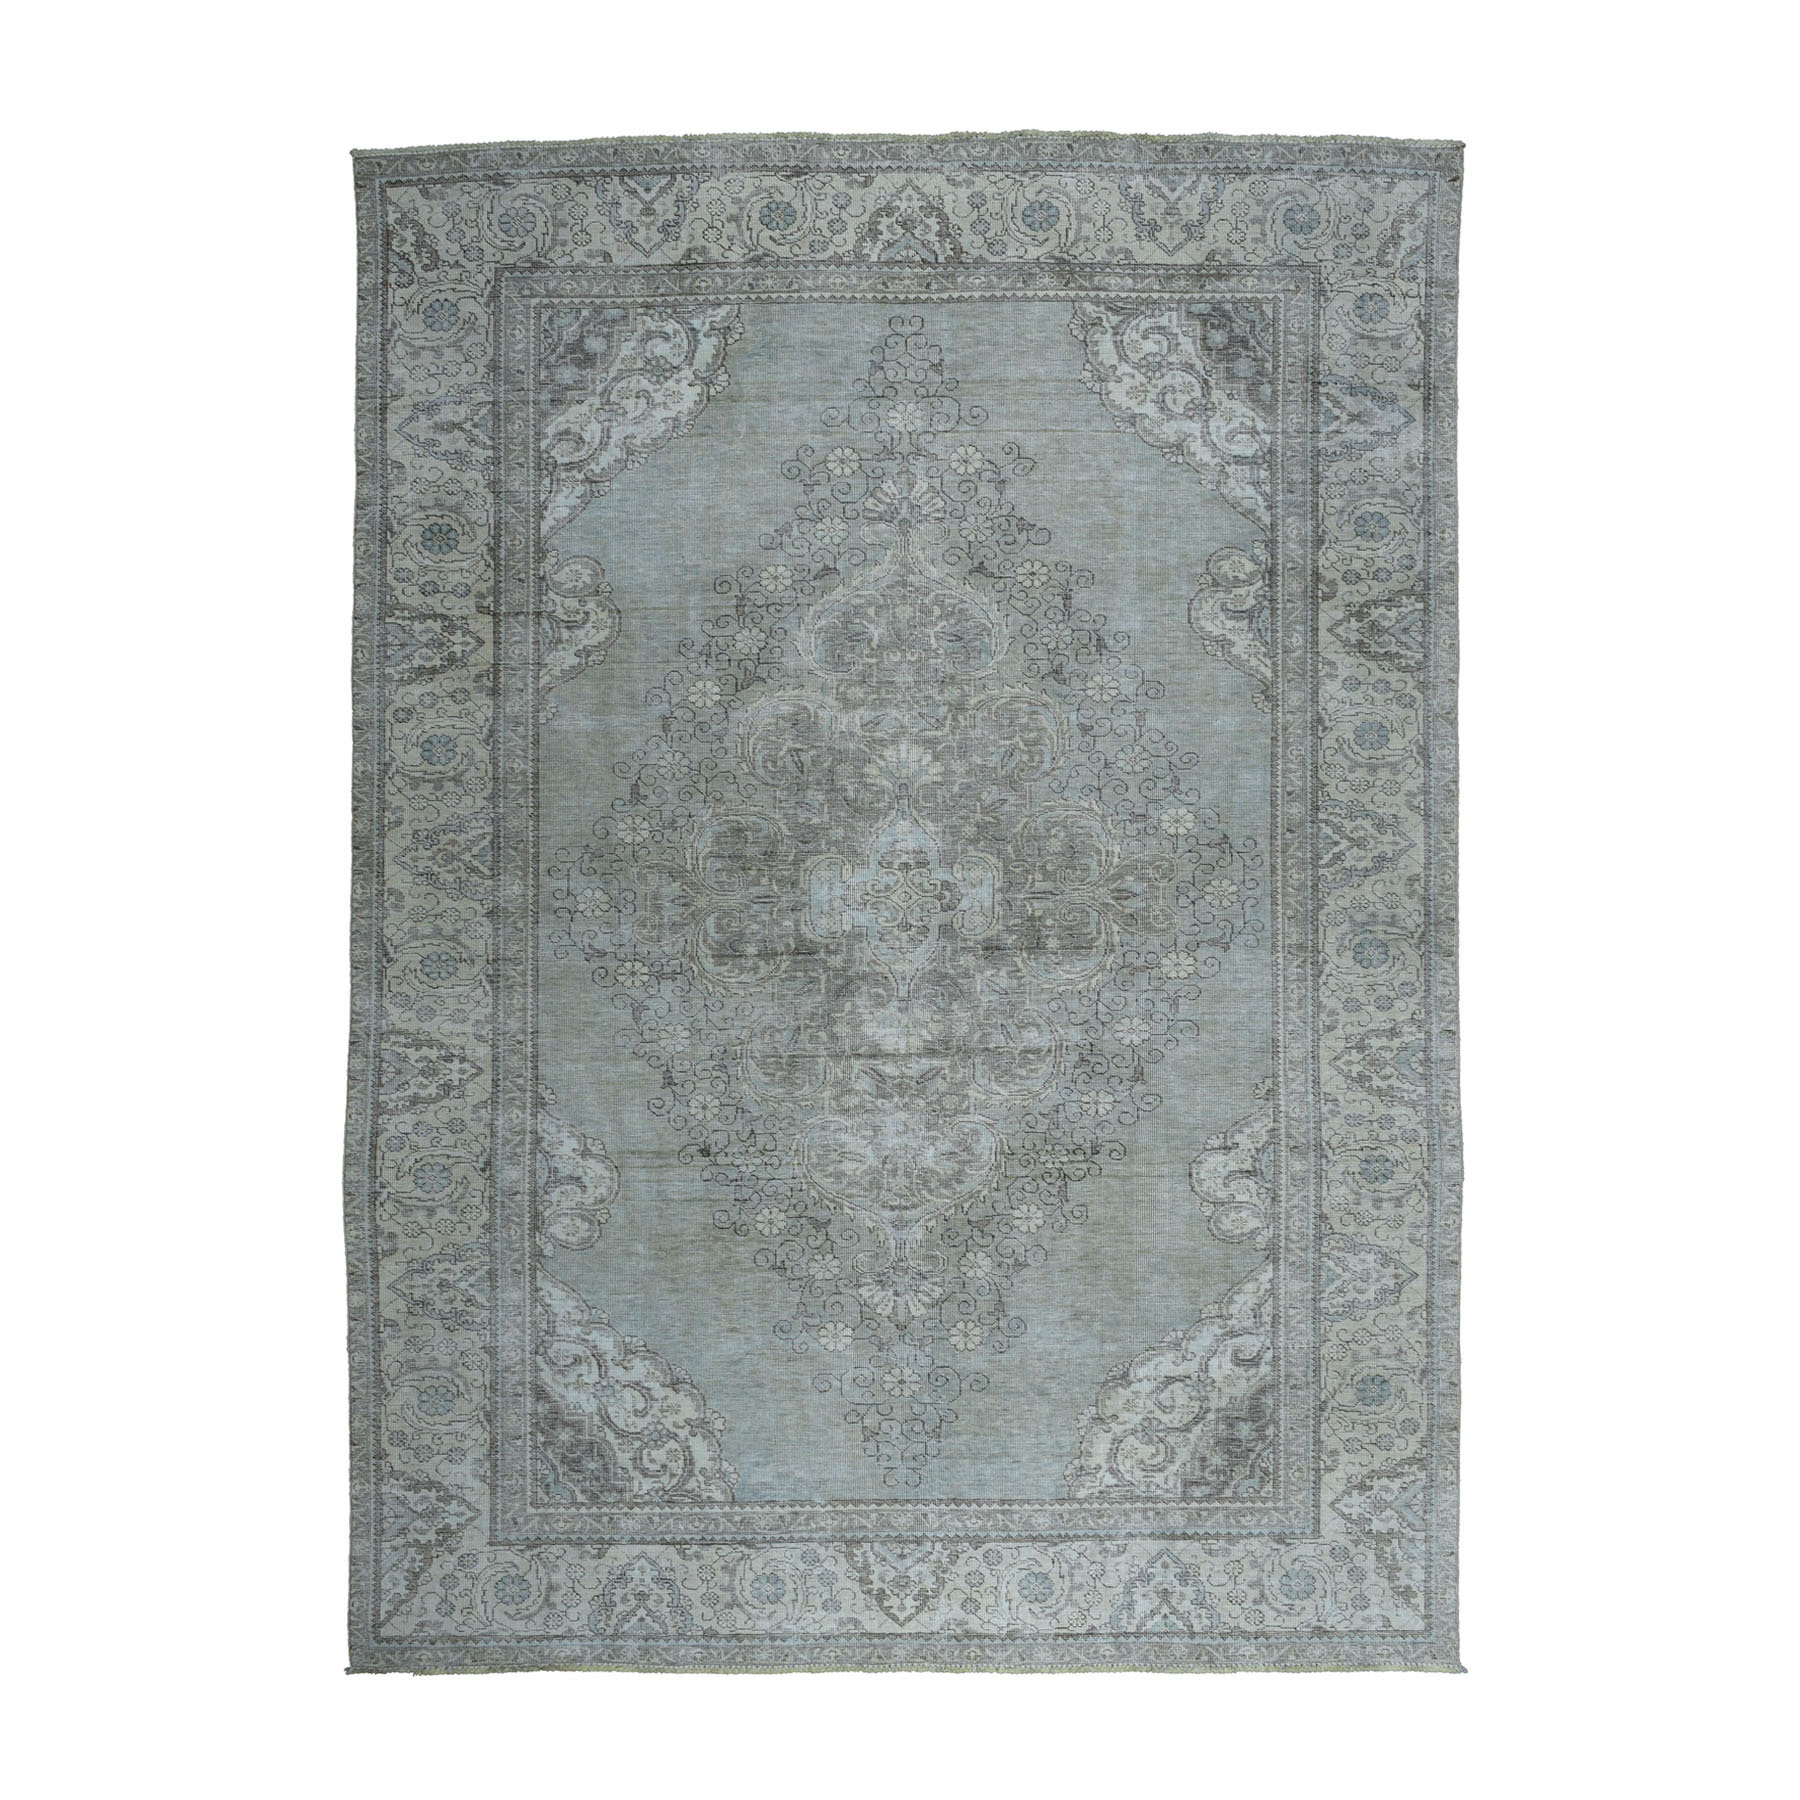 Fetneh Collection And Vintage Overdyed Collection Hand Knotted Teal Rug No: 01104264